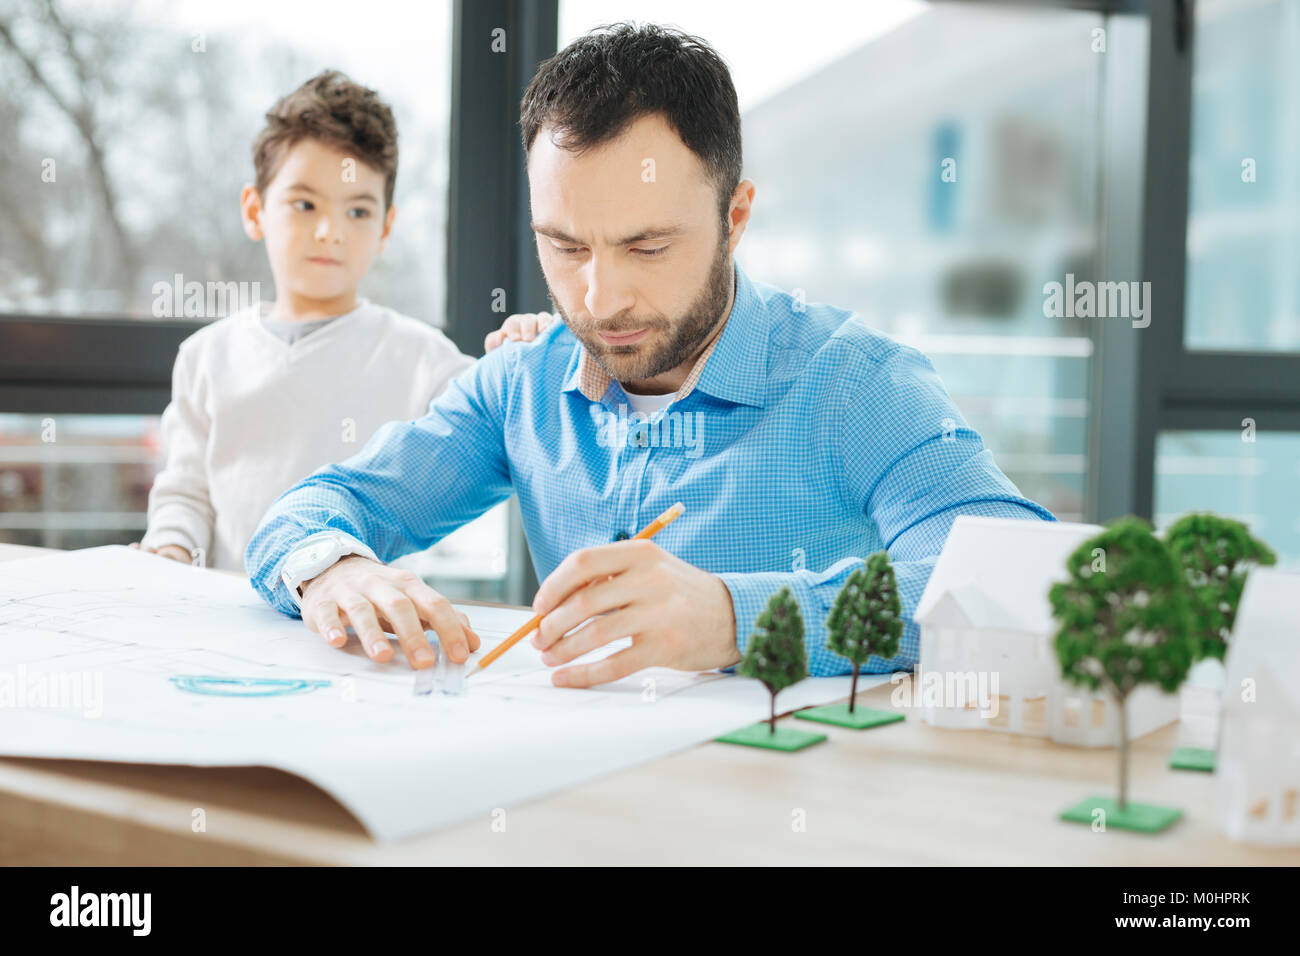 Busy architect paying no attention to his little son - Stock Image